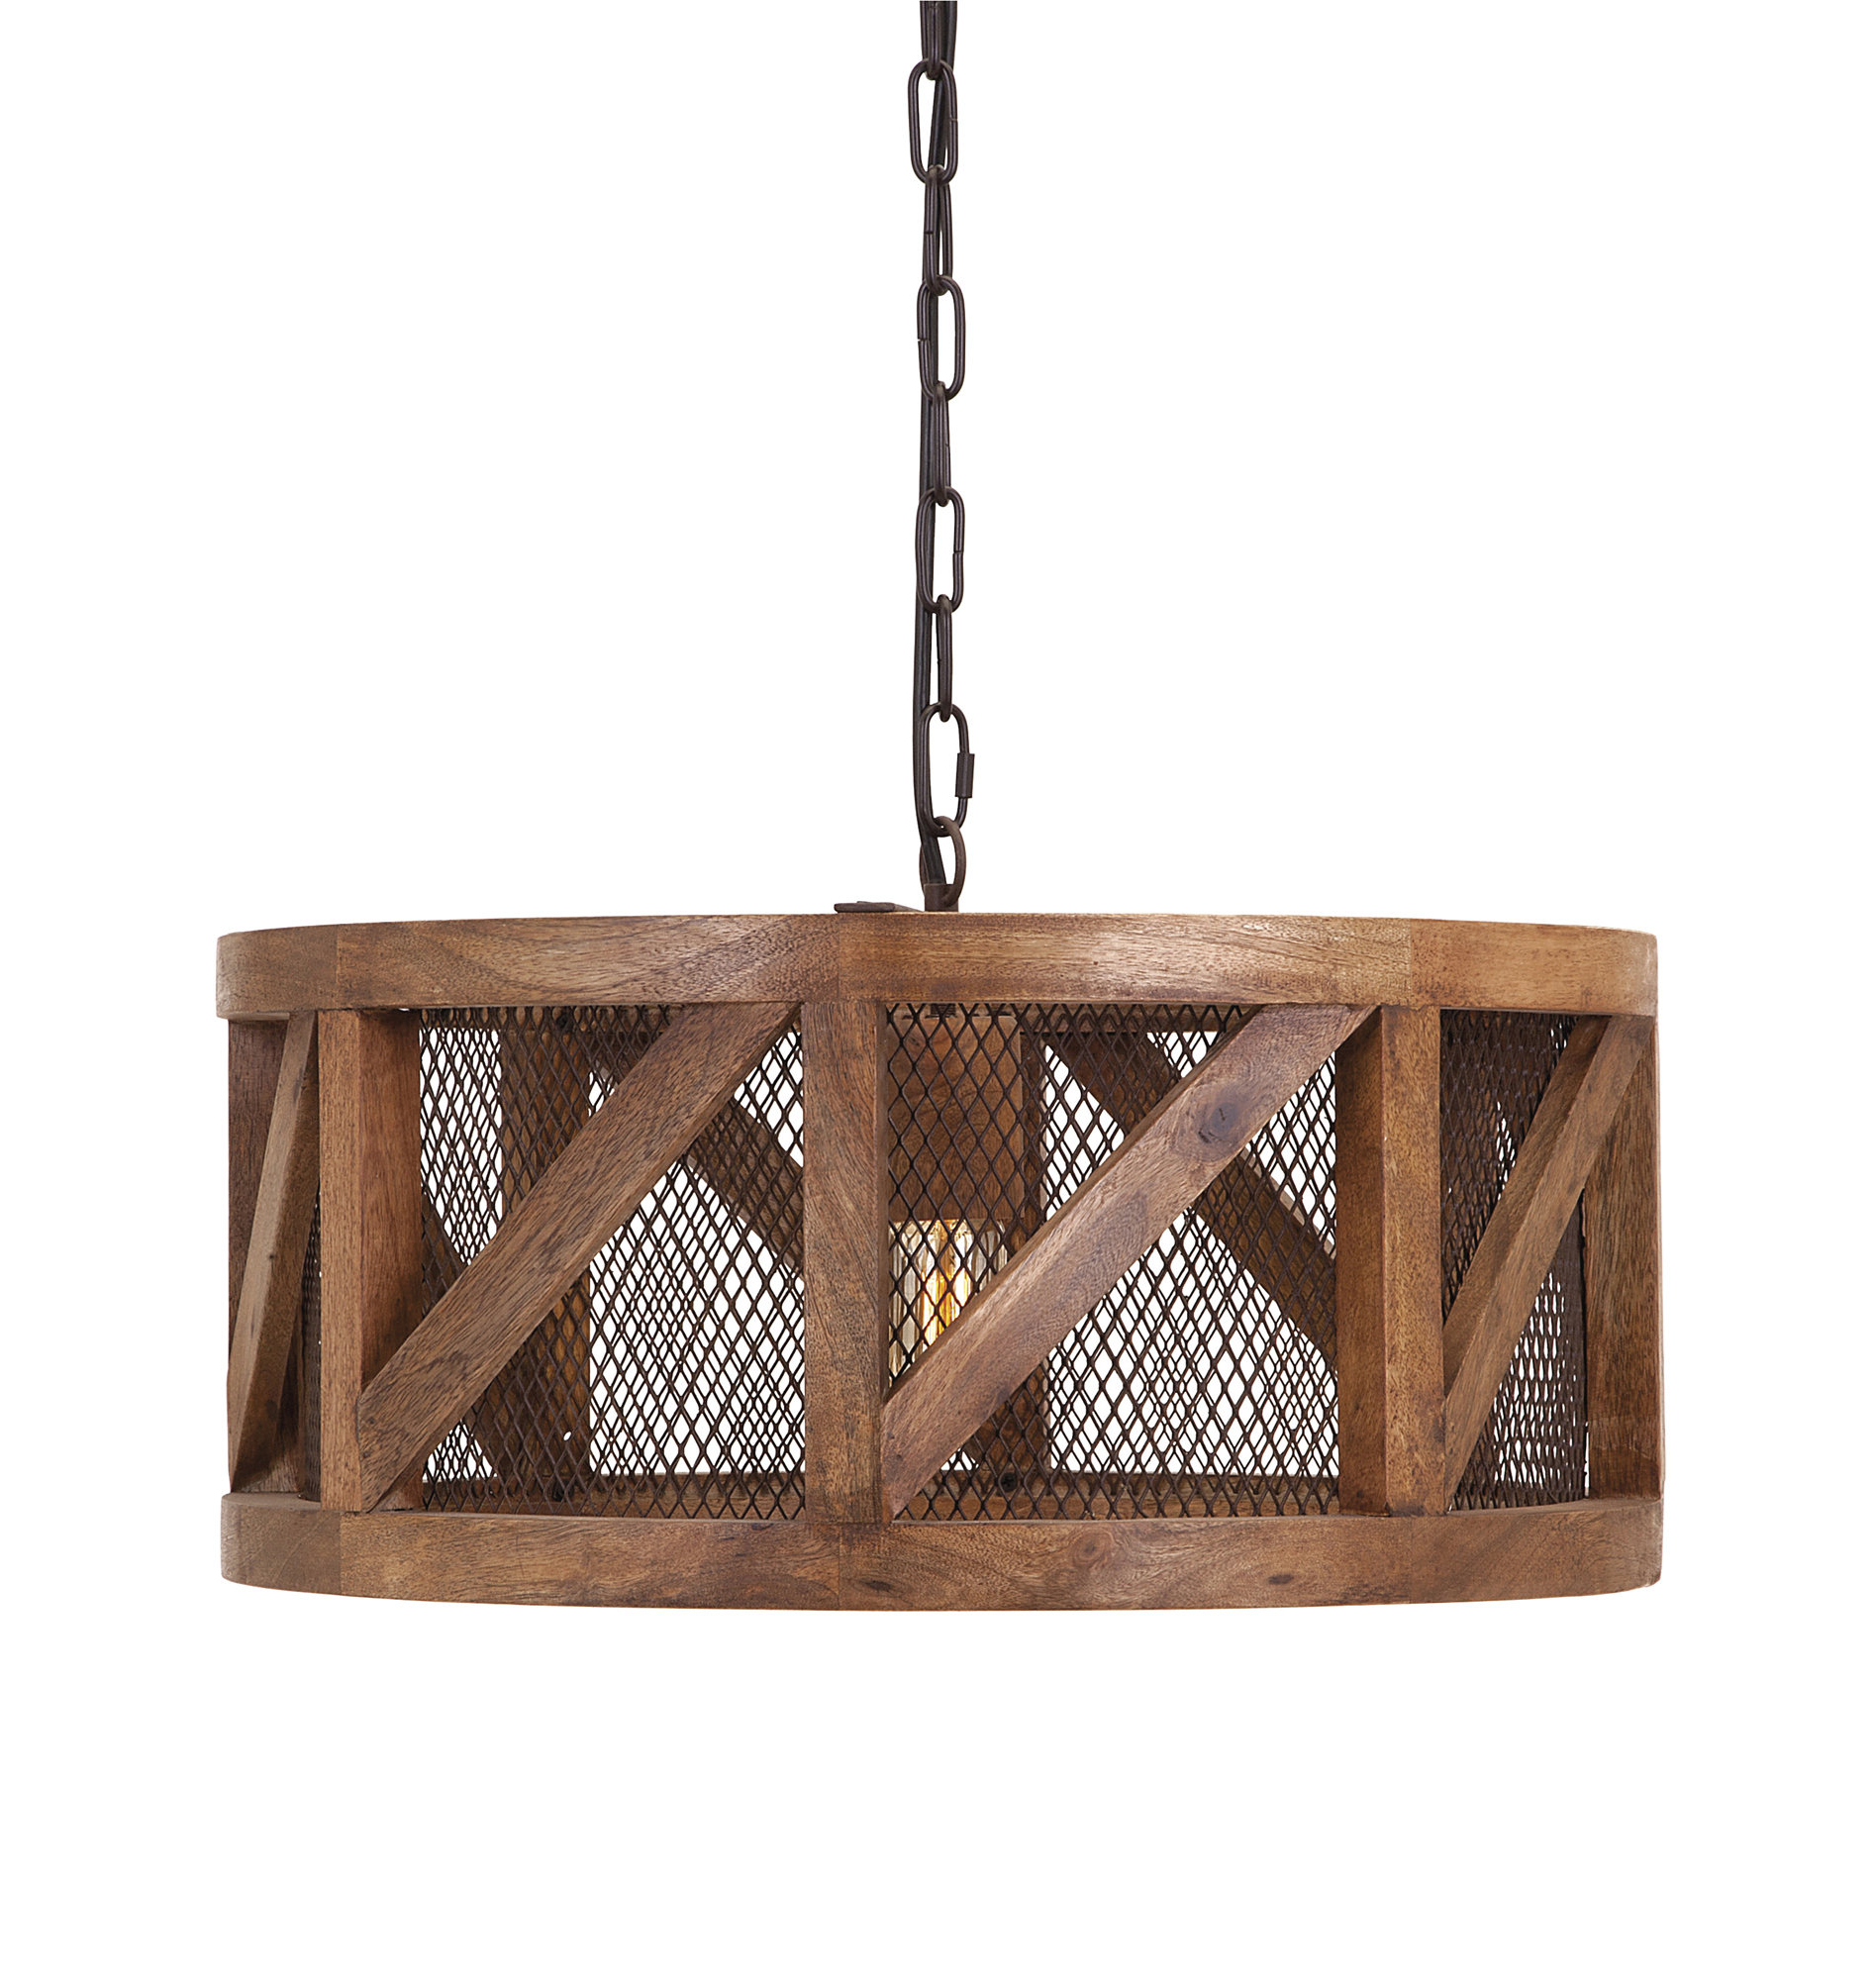 Tiefort 1 Light Pendant Regarding Most Current Finnick 1 Light Geometric Pendants (View 16 of 20)